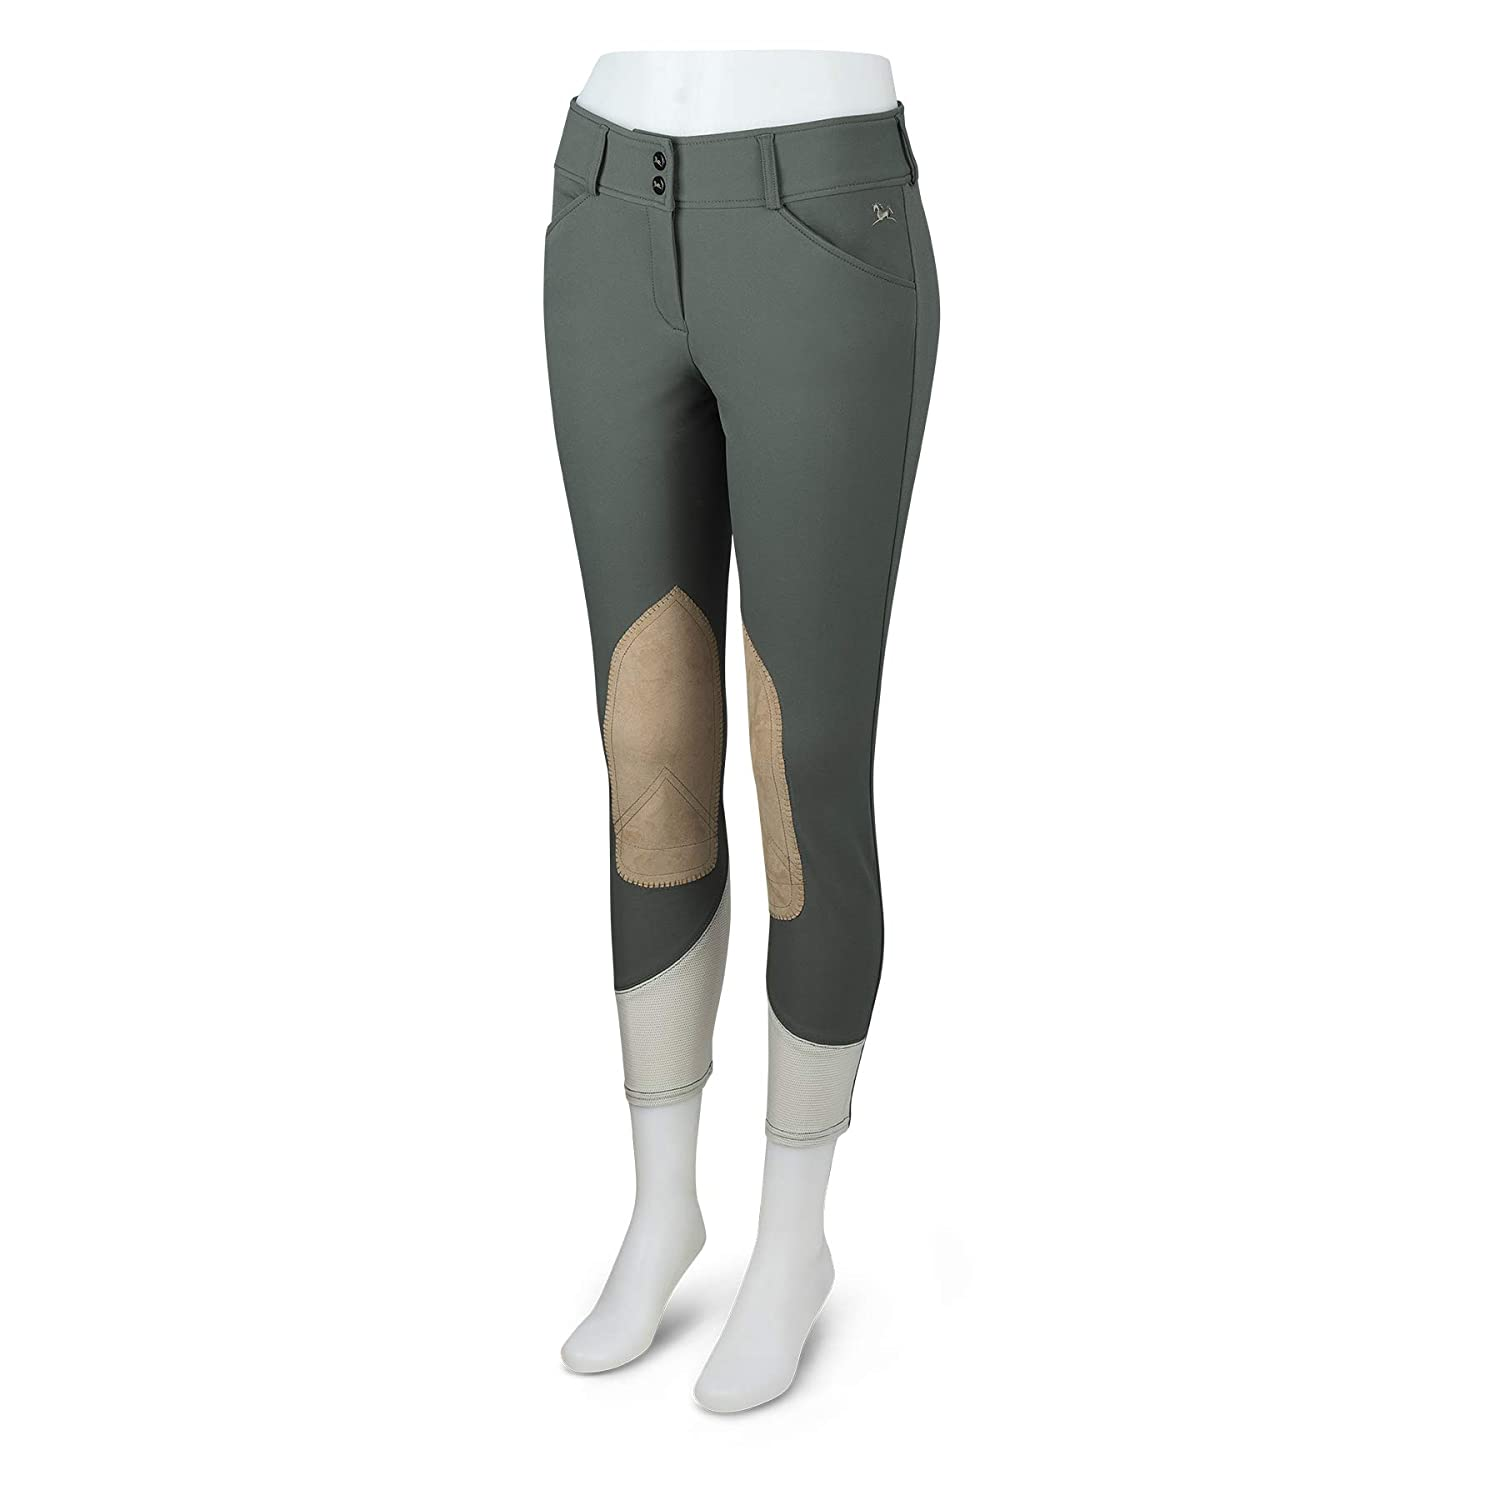 Olive, 24 RJ Classics Gulf Low Rise Front Zip Breeches